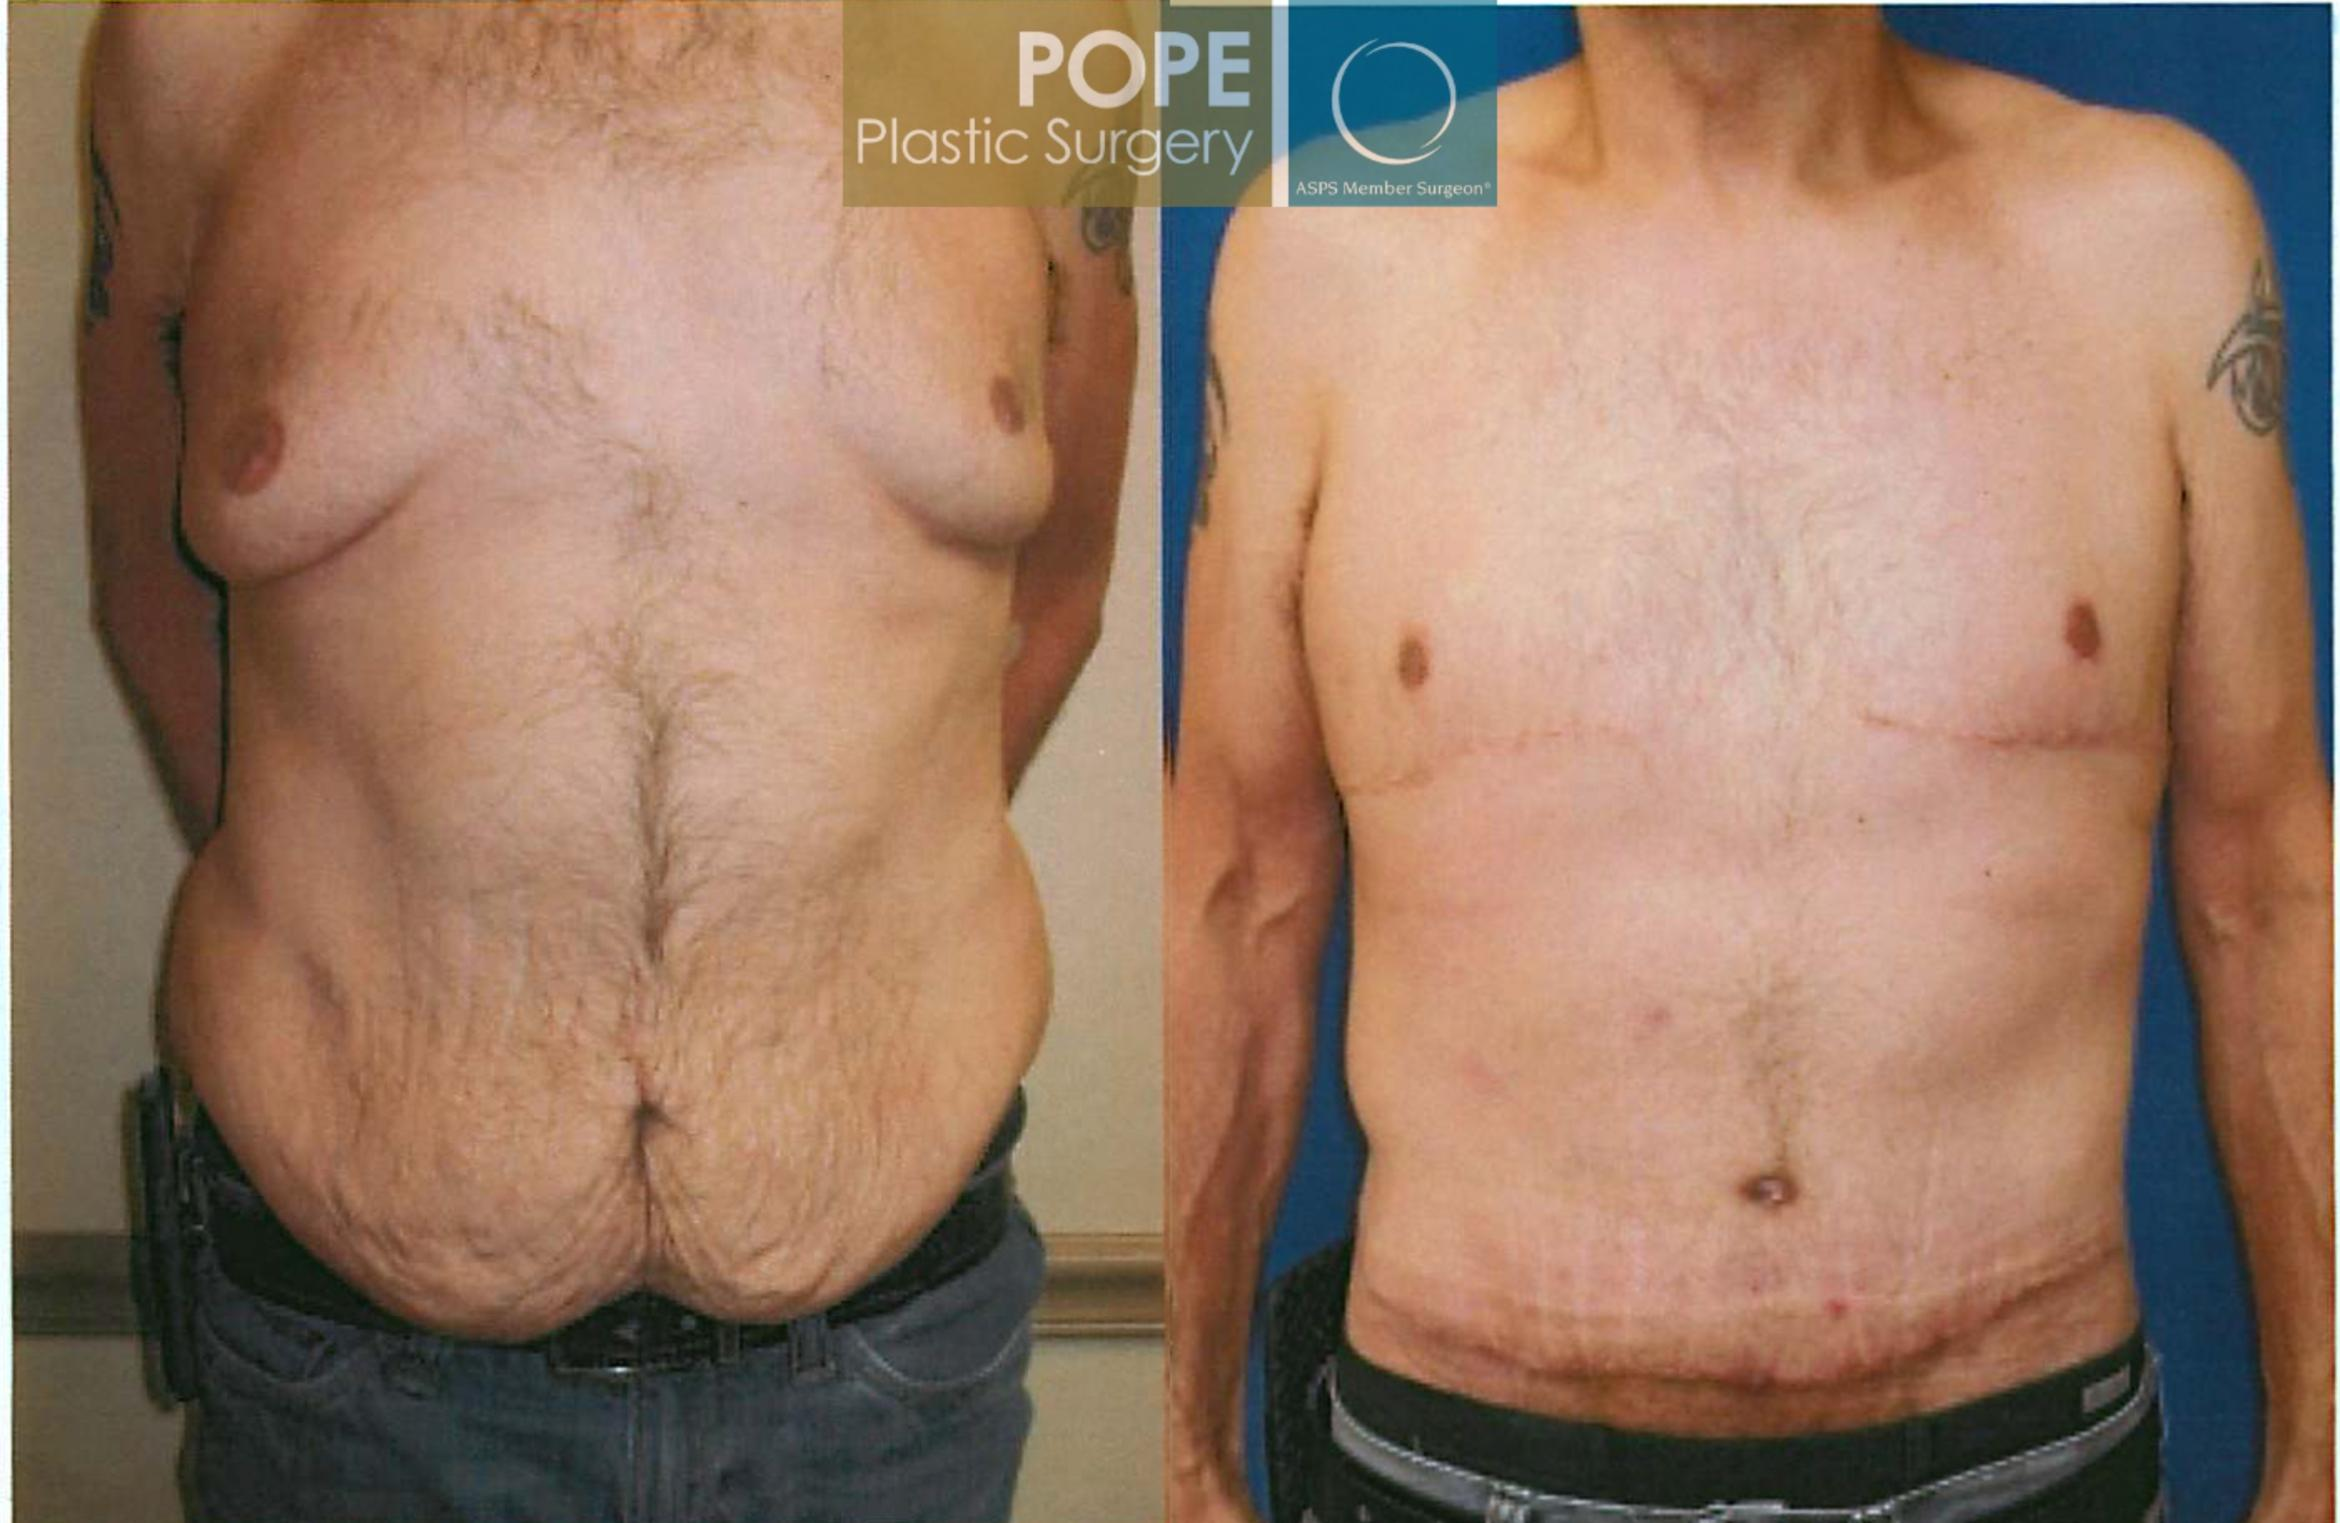 Body Lift Case 93 Before & After View #1 | Orlando, FL | Pope Plastic Surgery